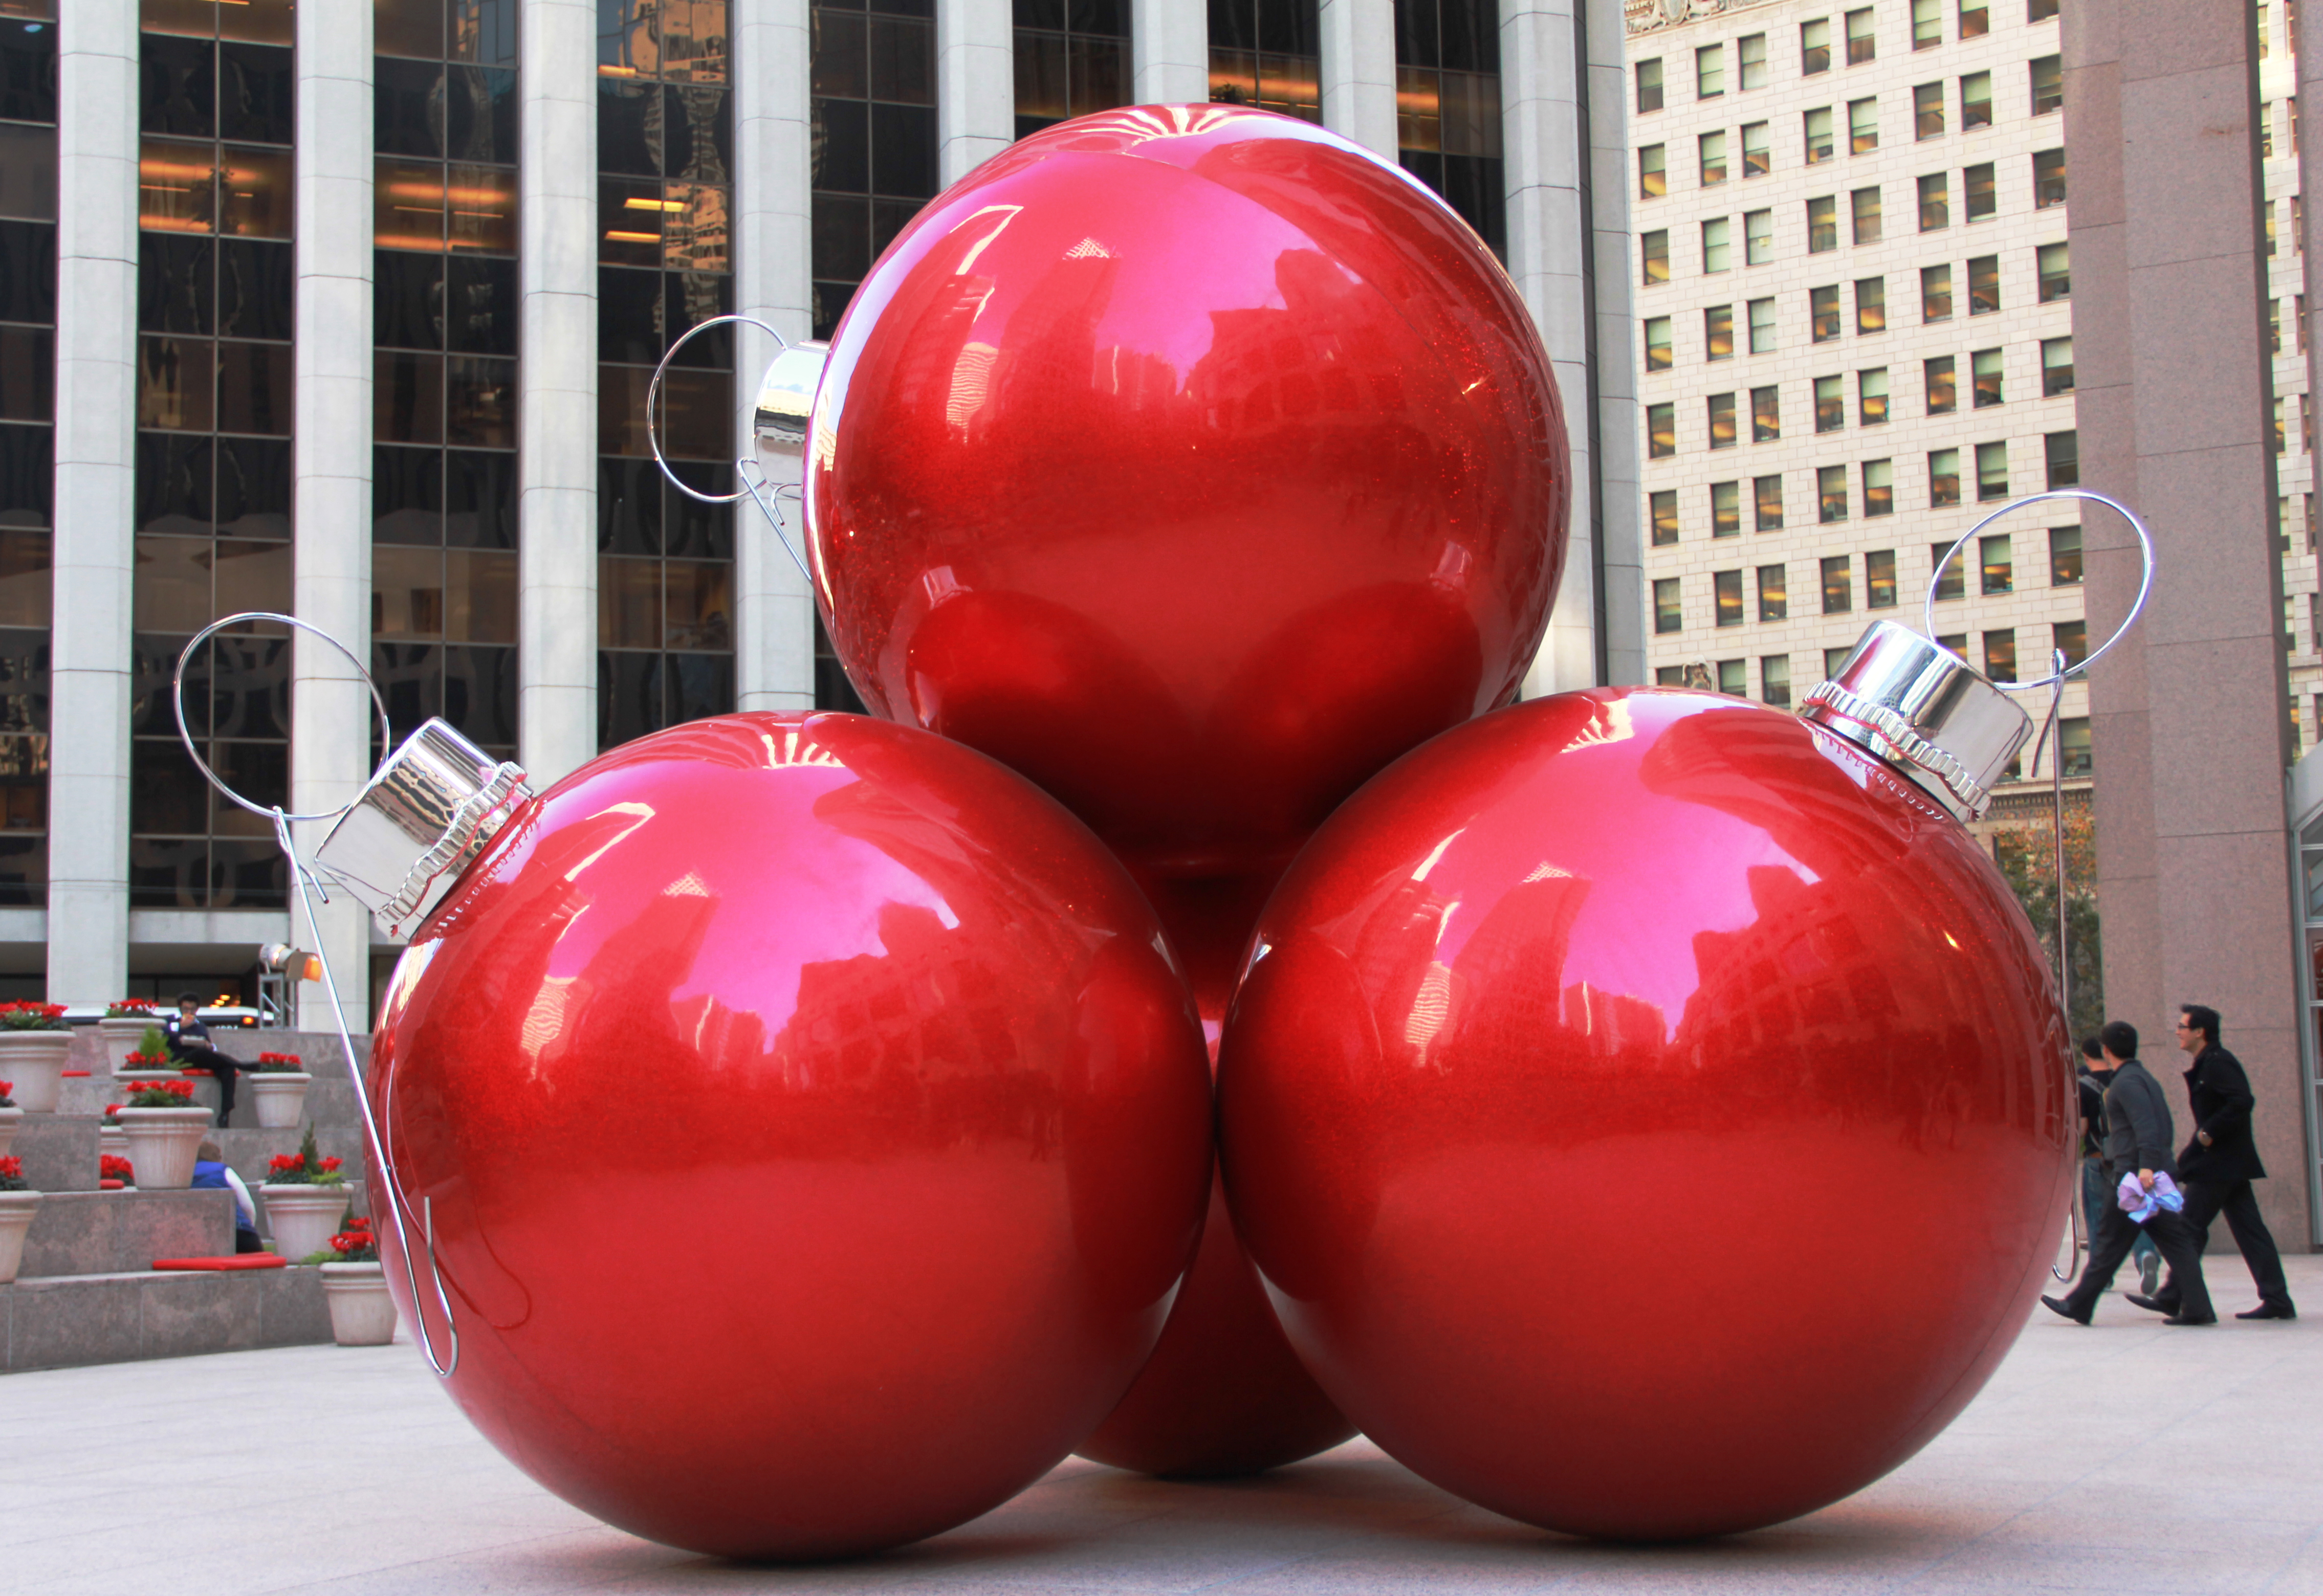 Want to see life size Christmas ornaments? | Just a little Brit